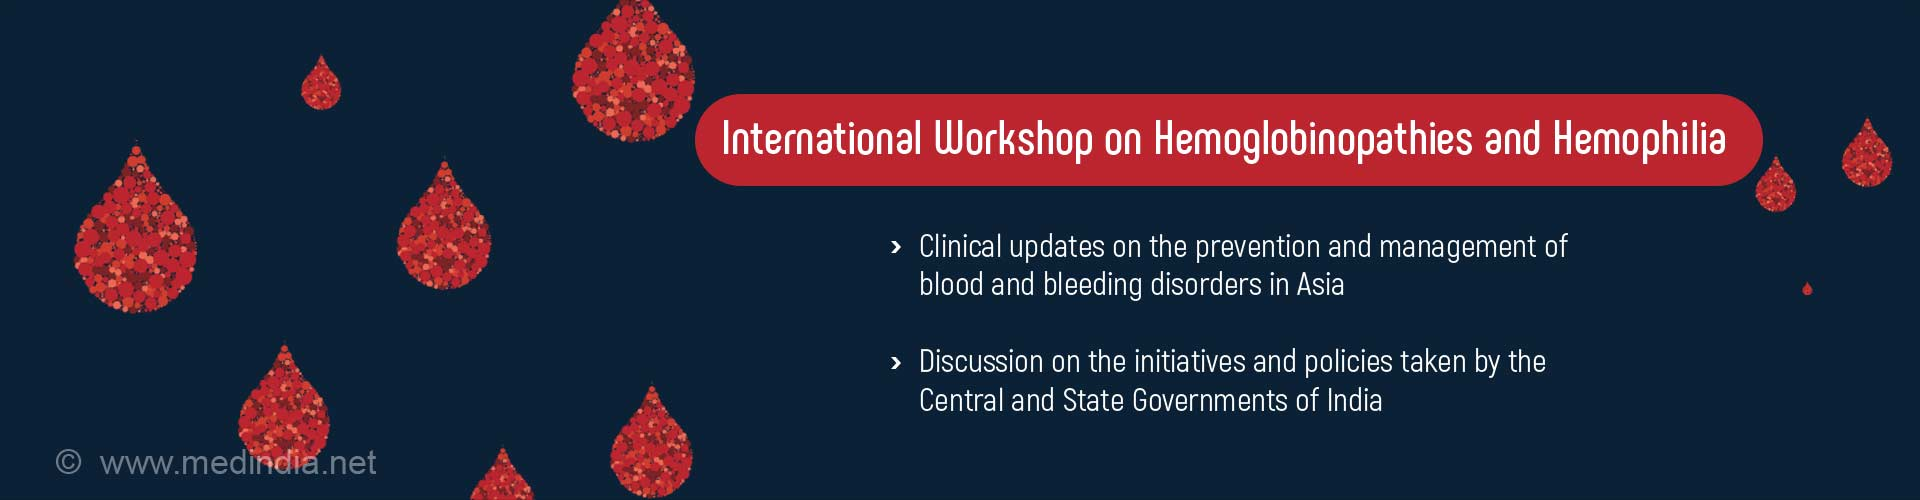 International Workshop on Hemoglobinopathies and Hemophilia at Bangalore